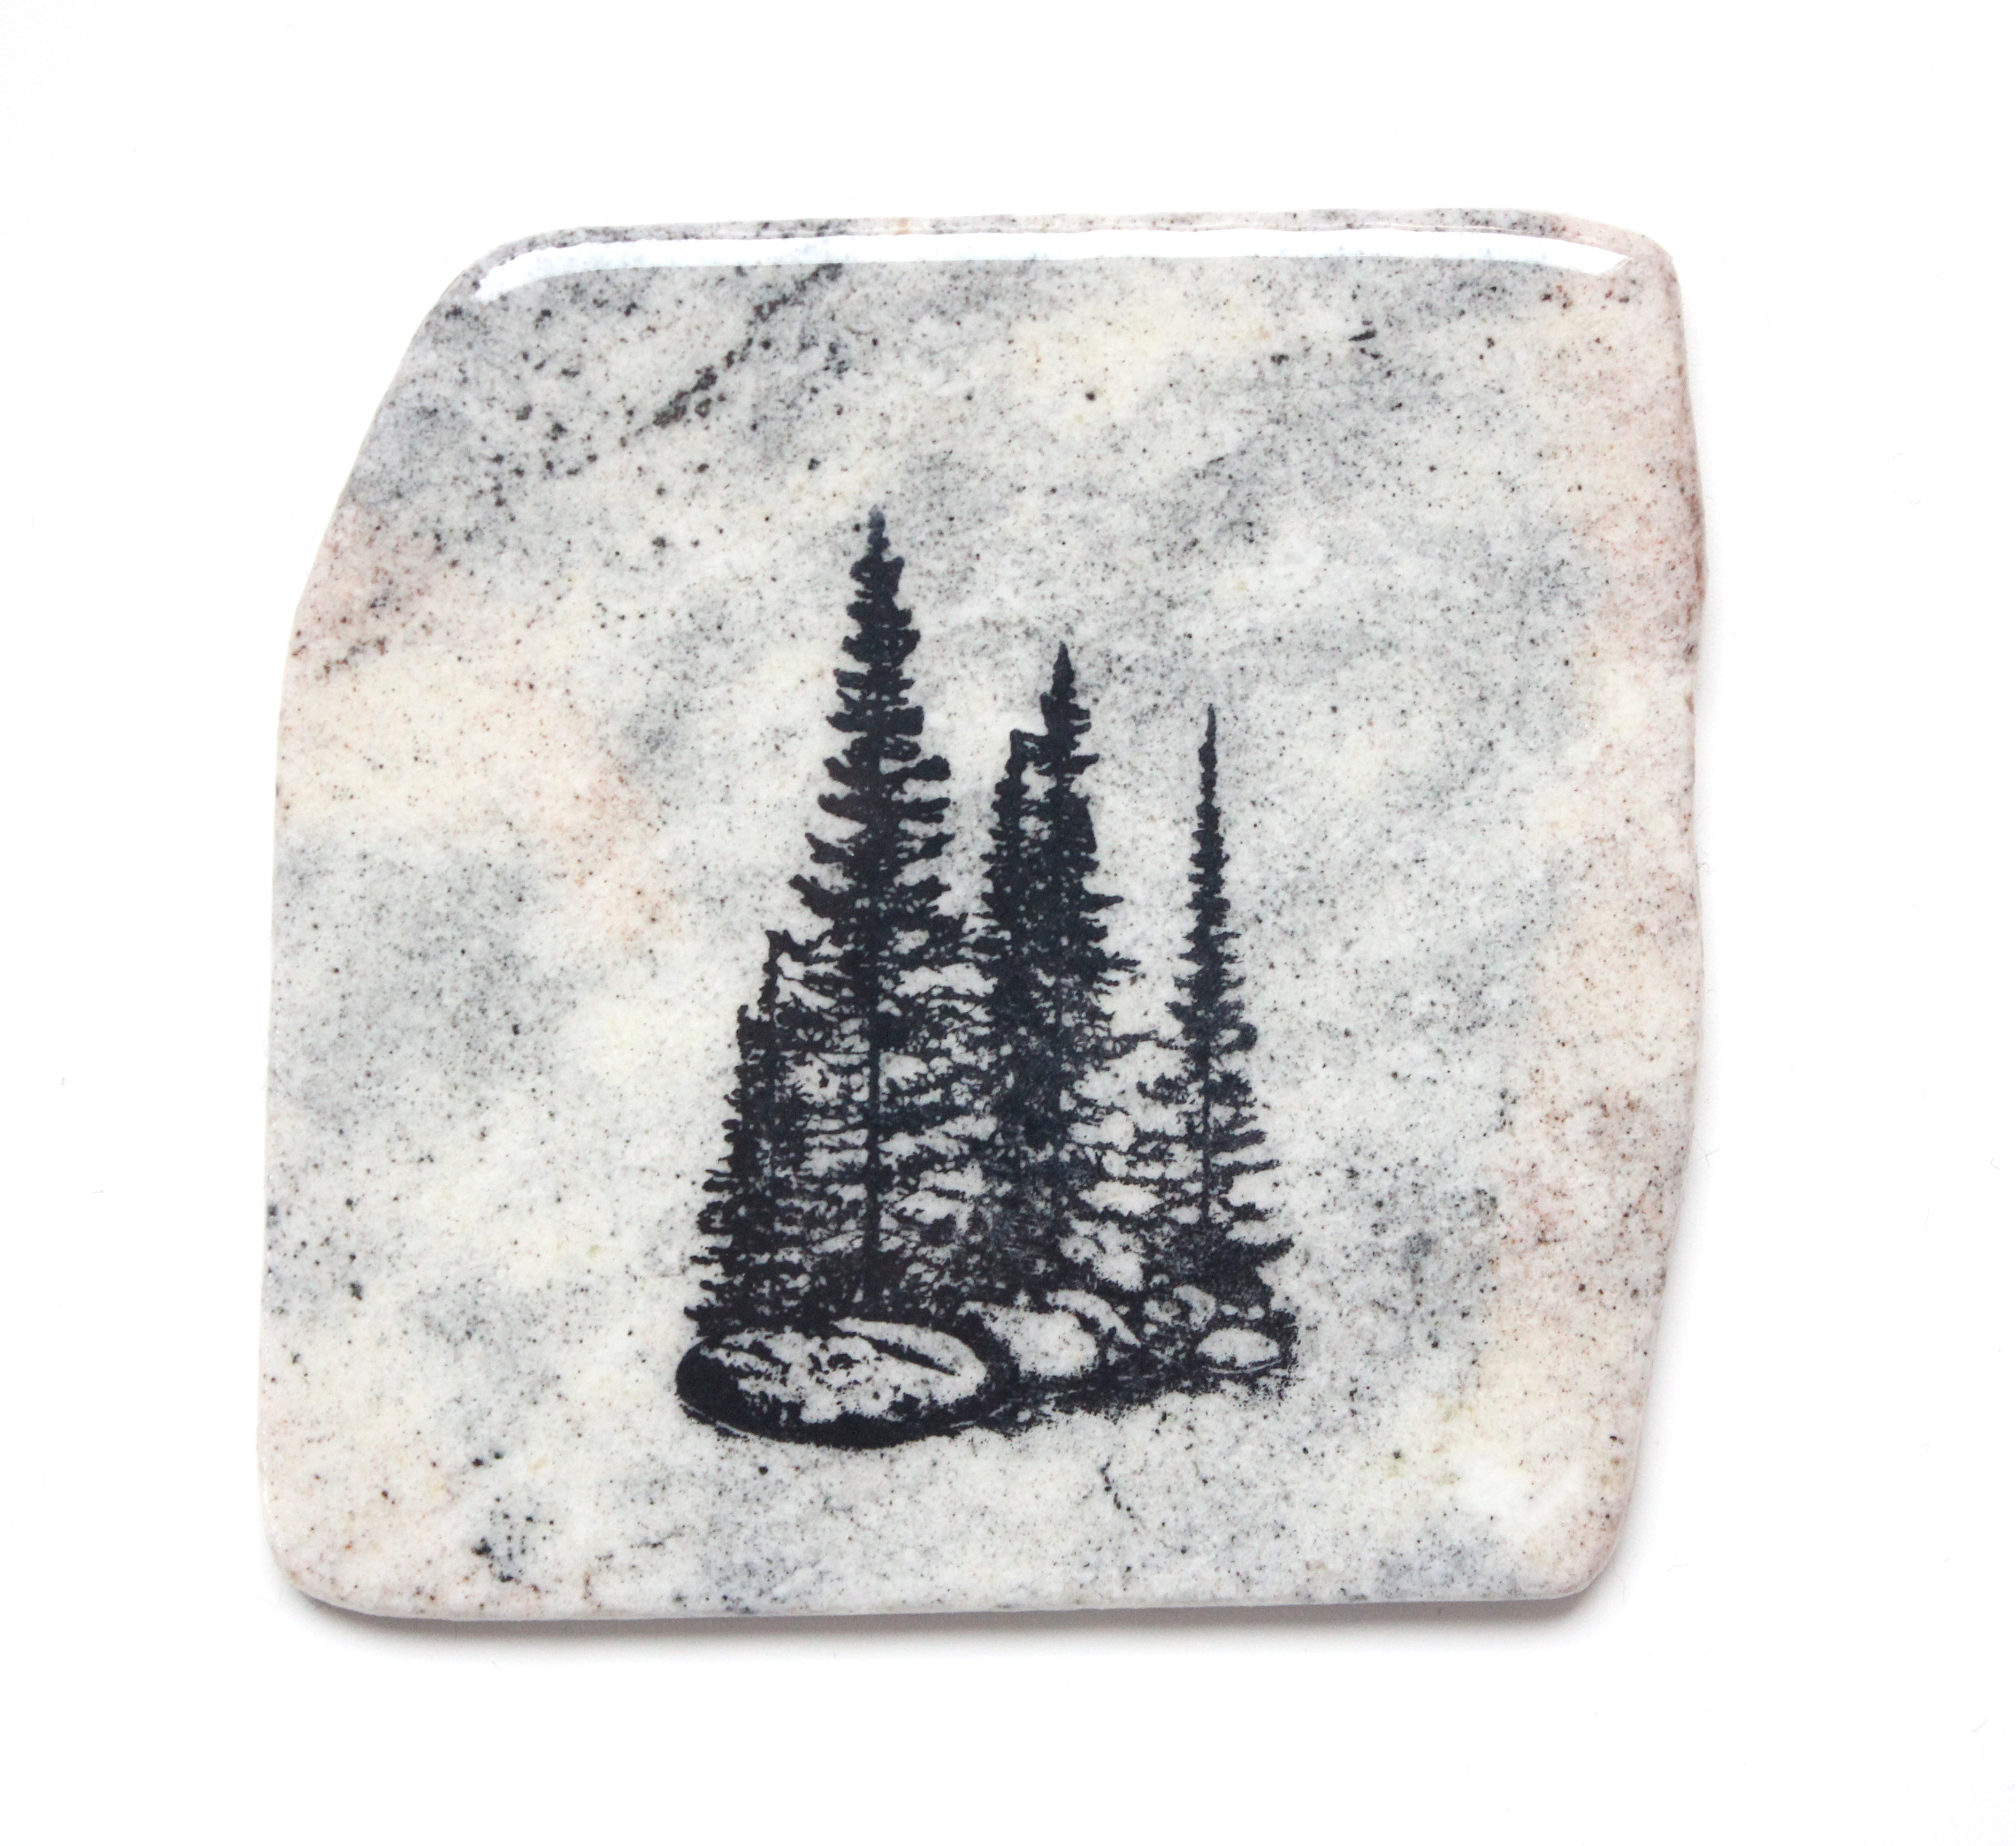 White Made in Canada granite coaster with three pine trees print.